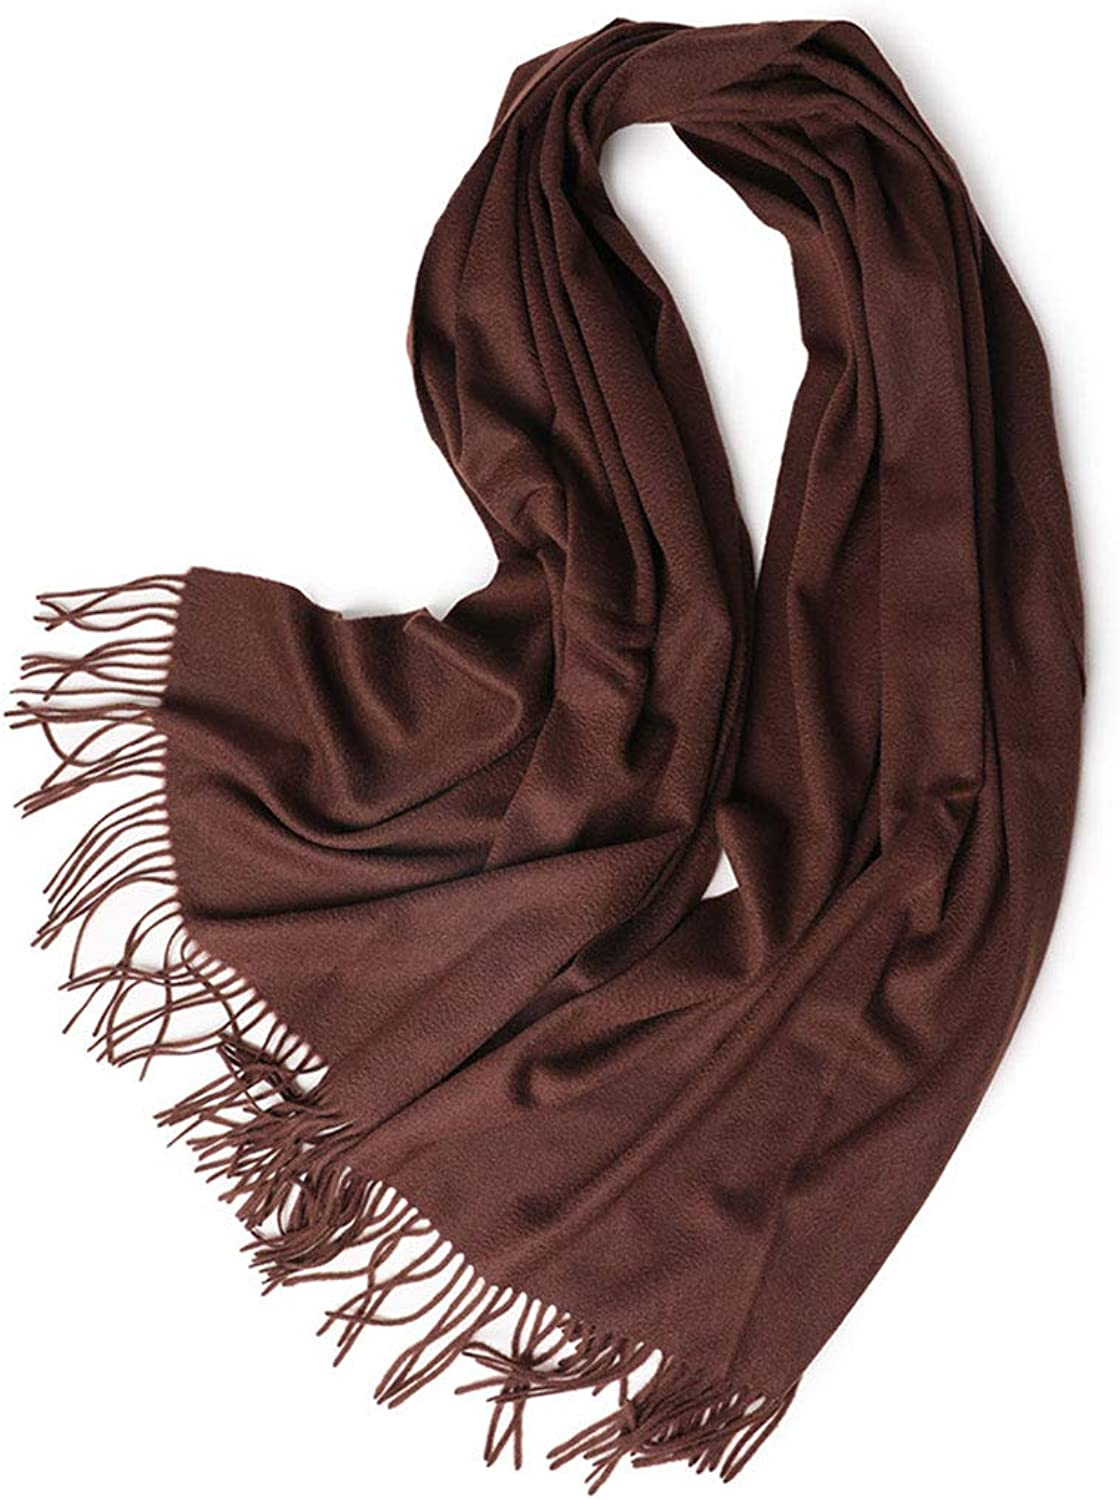 GJFeng Long Thick Cashmere Scarf Wavy Cashmere Scarf Ladies Shawl Fringed Shawl 70  200cm Brown Purple (color   Brown, Size   70  200cm)